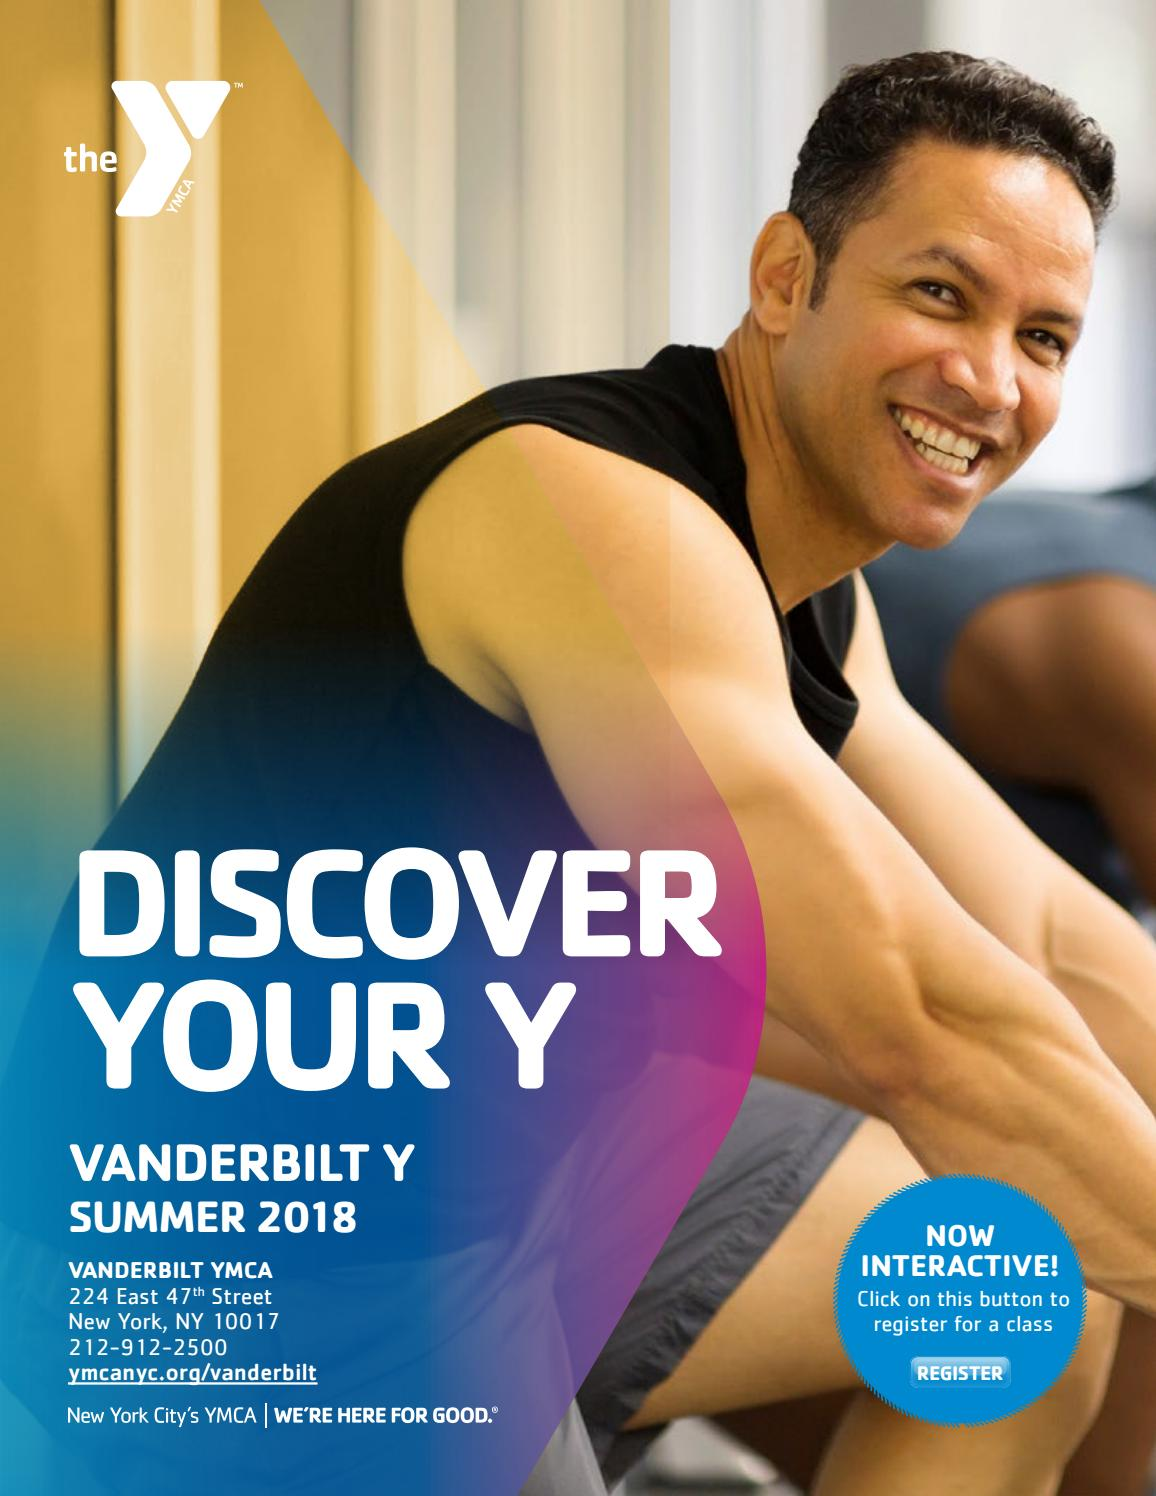 vanderbilt pg summer 2018 by new york city's ymca - issuu